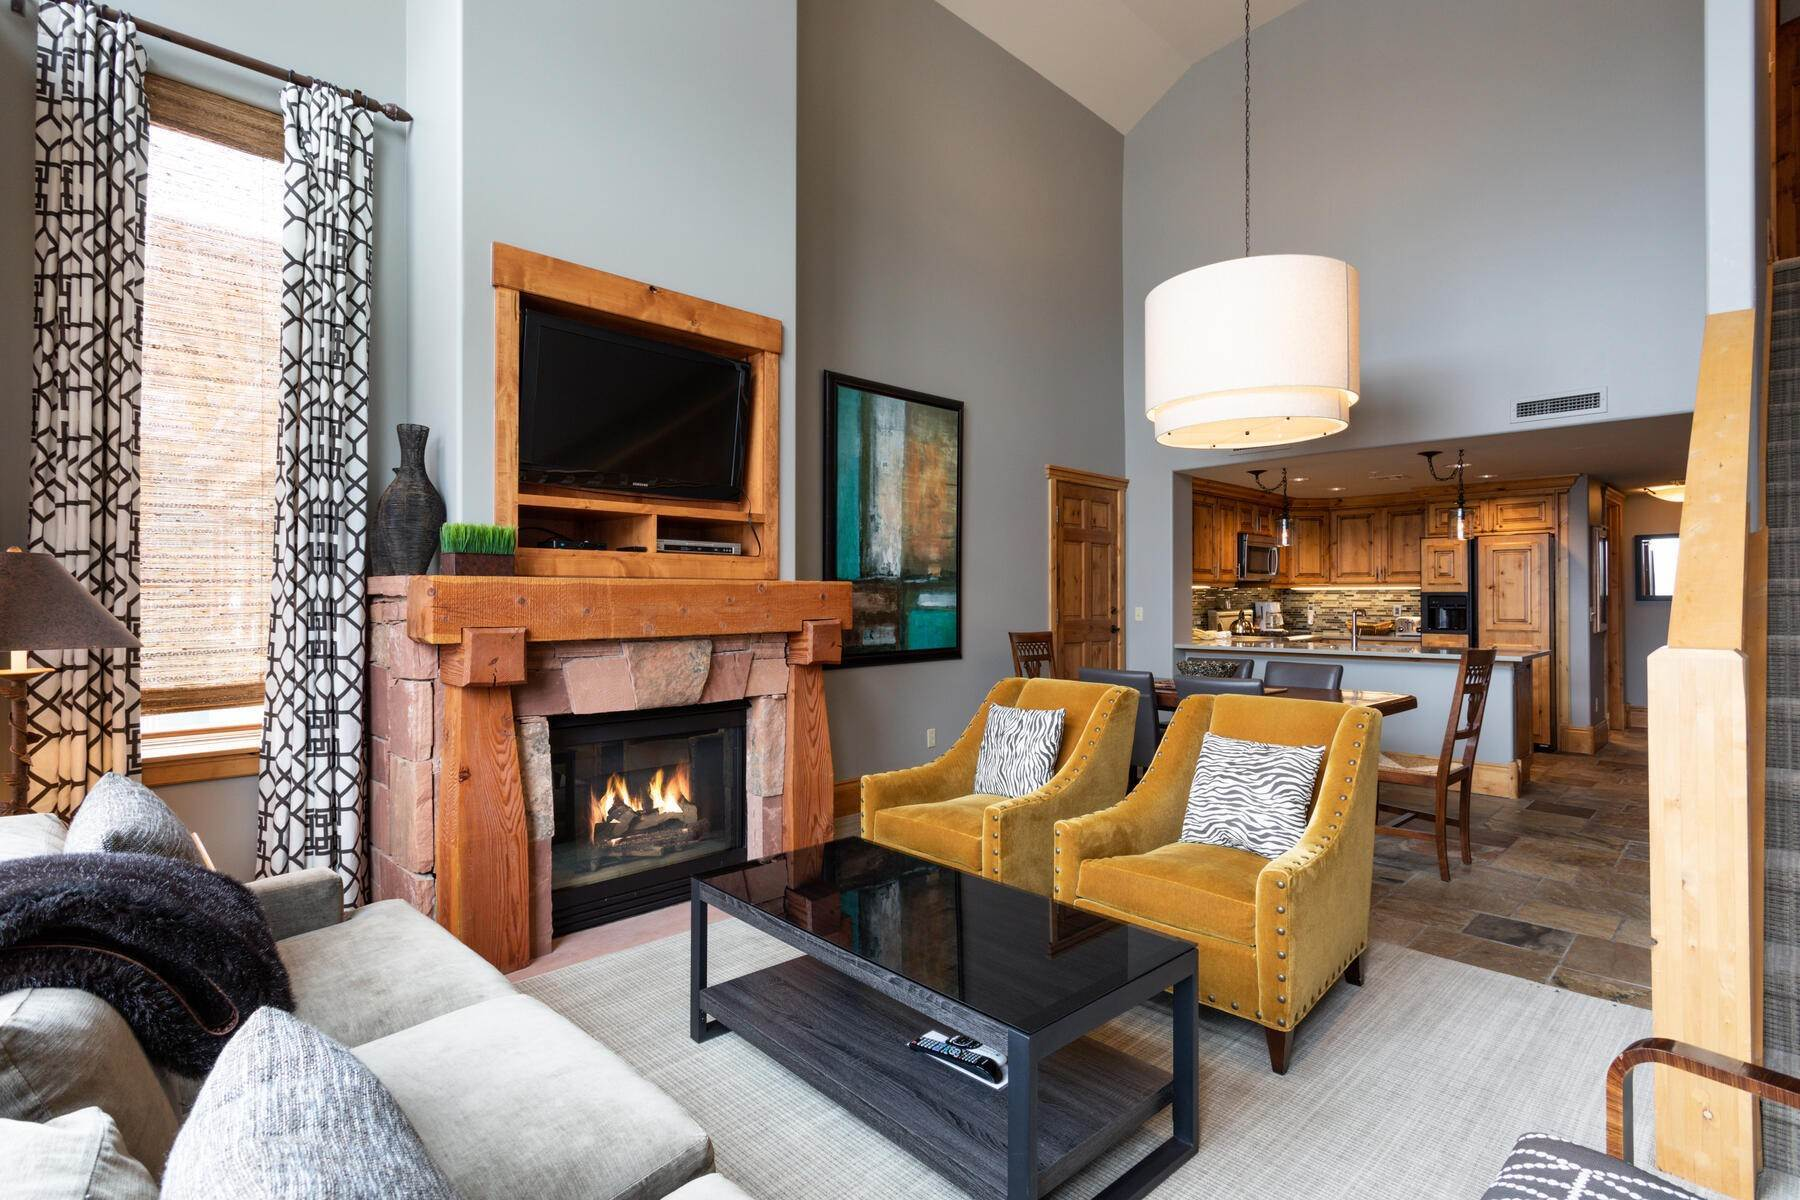 Condominiums for Sale at Remodeled Lodges at Deer Valley 2900 Deer Valley Dr E #E326 Park City, Utah 84060 United States